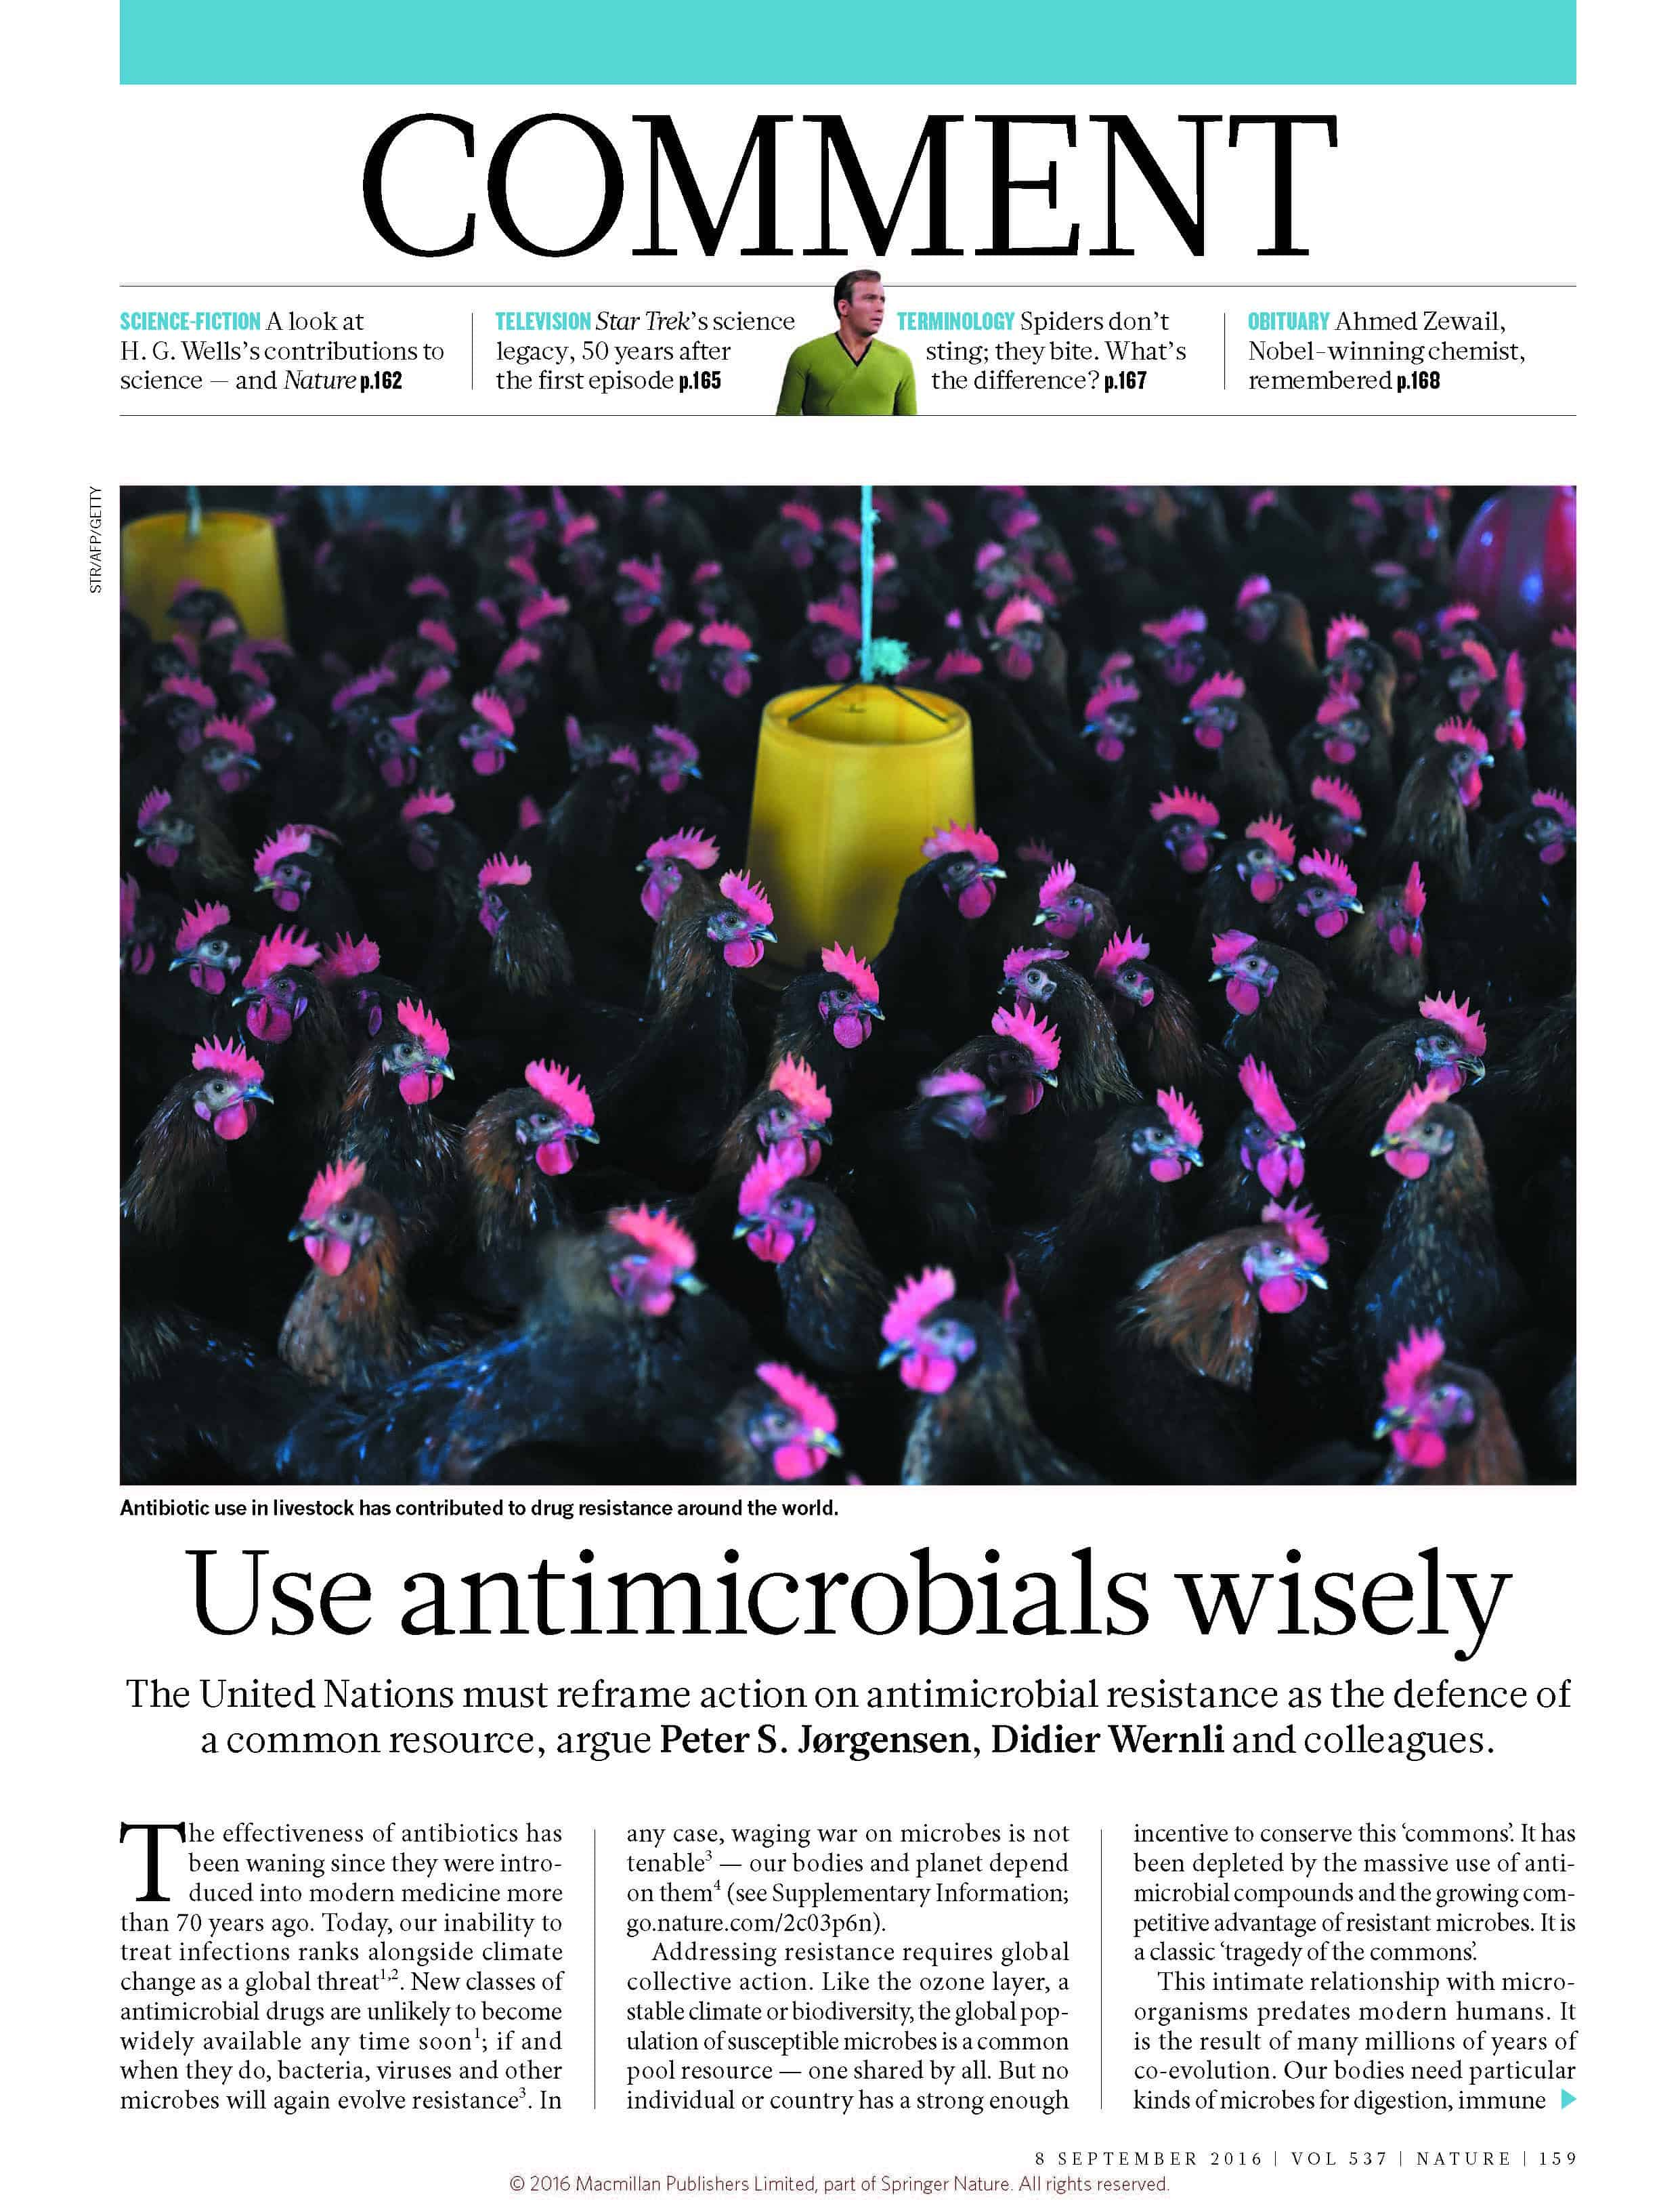 Use Antimicrobials Wisely - Center for Disease Dynamics